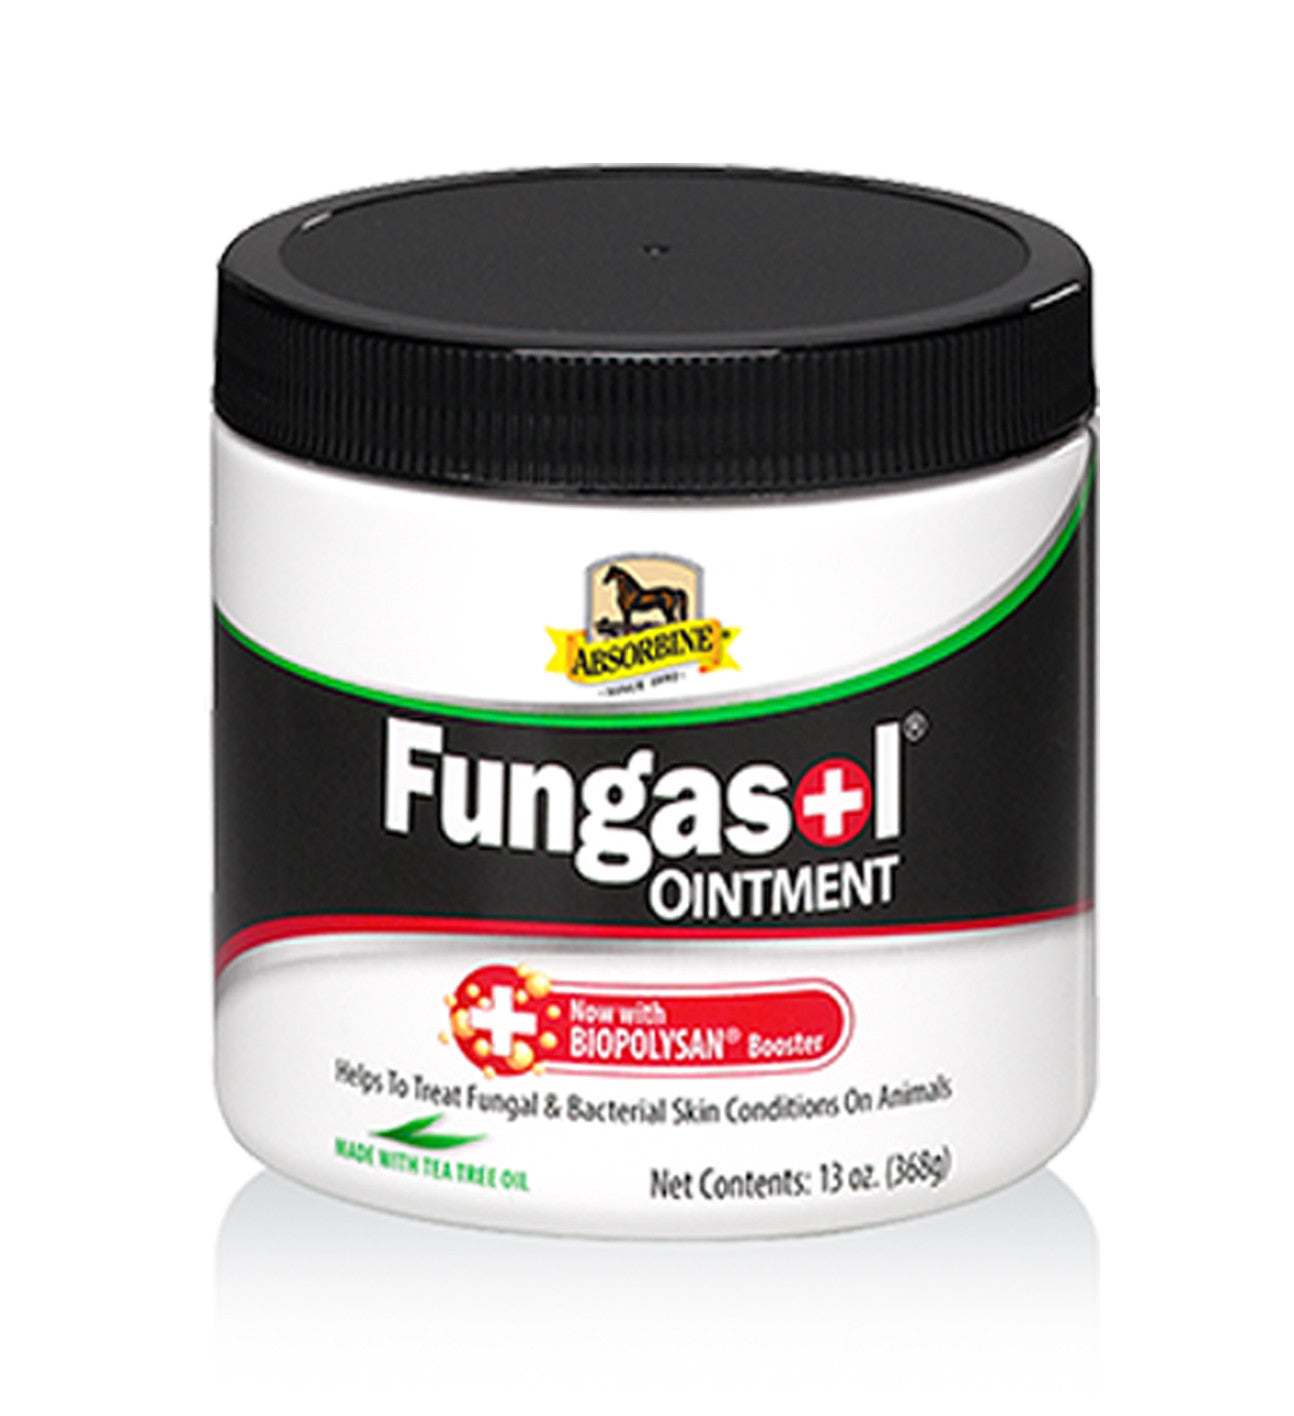 Absorbine Fungasol Ointment - North Shore Saddlery